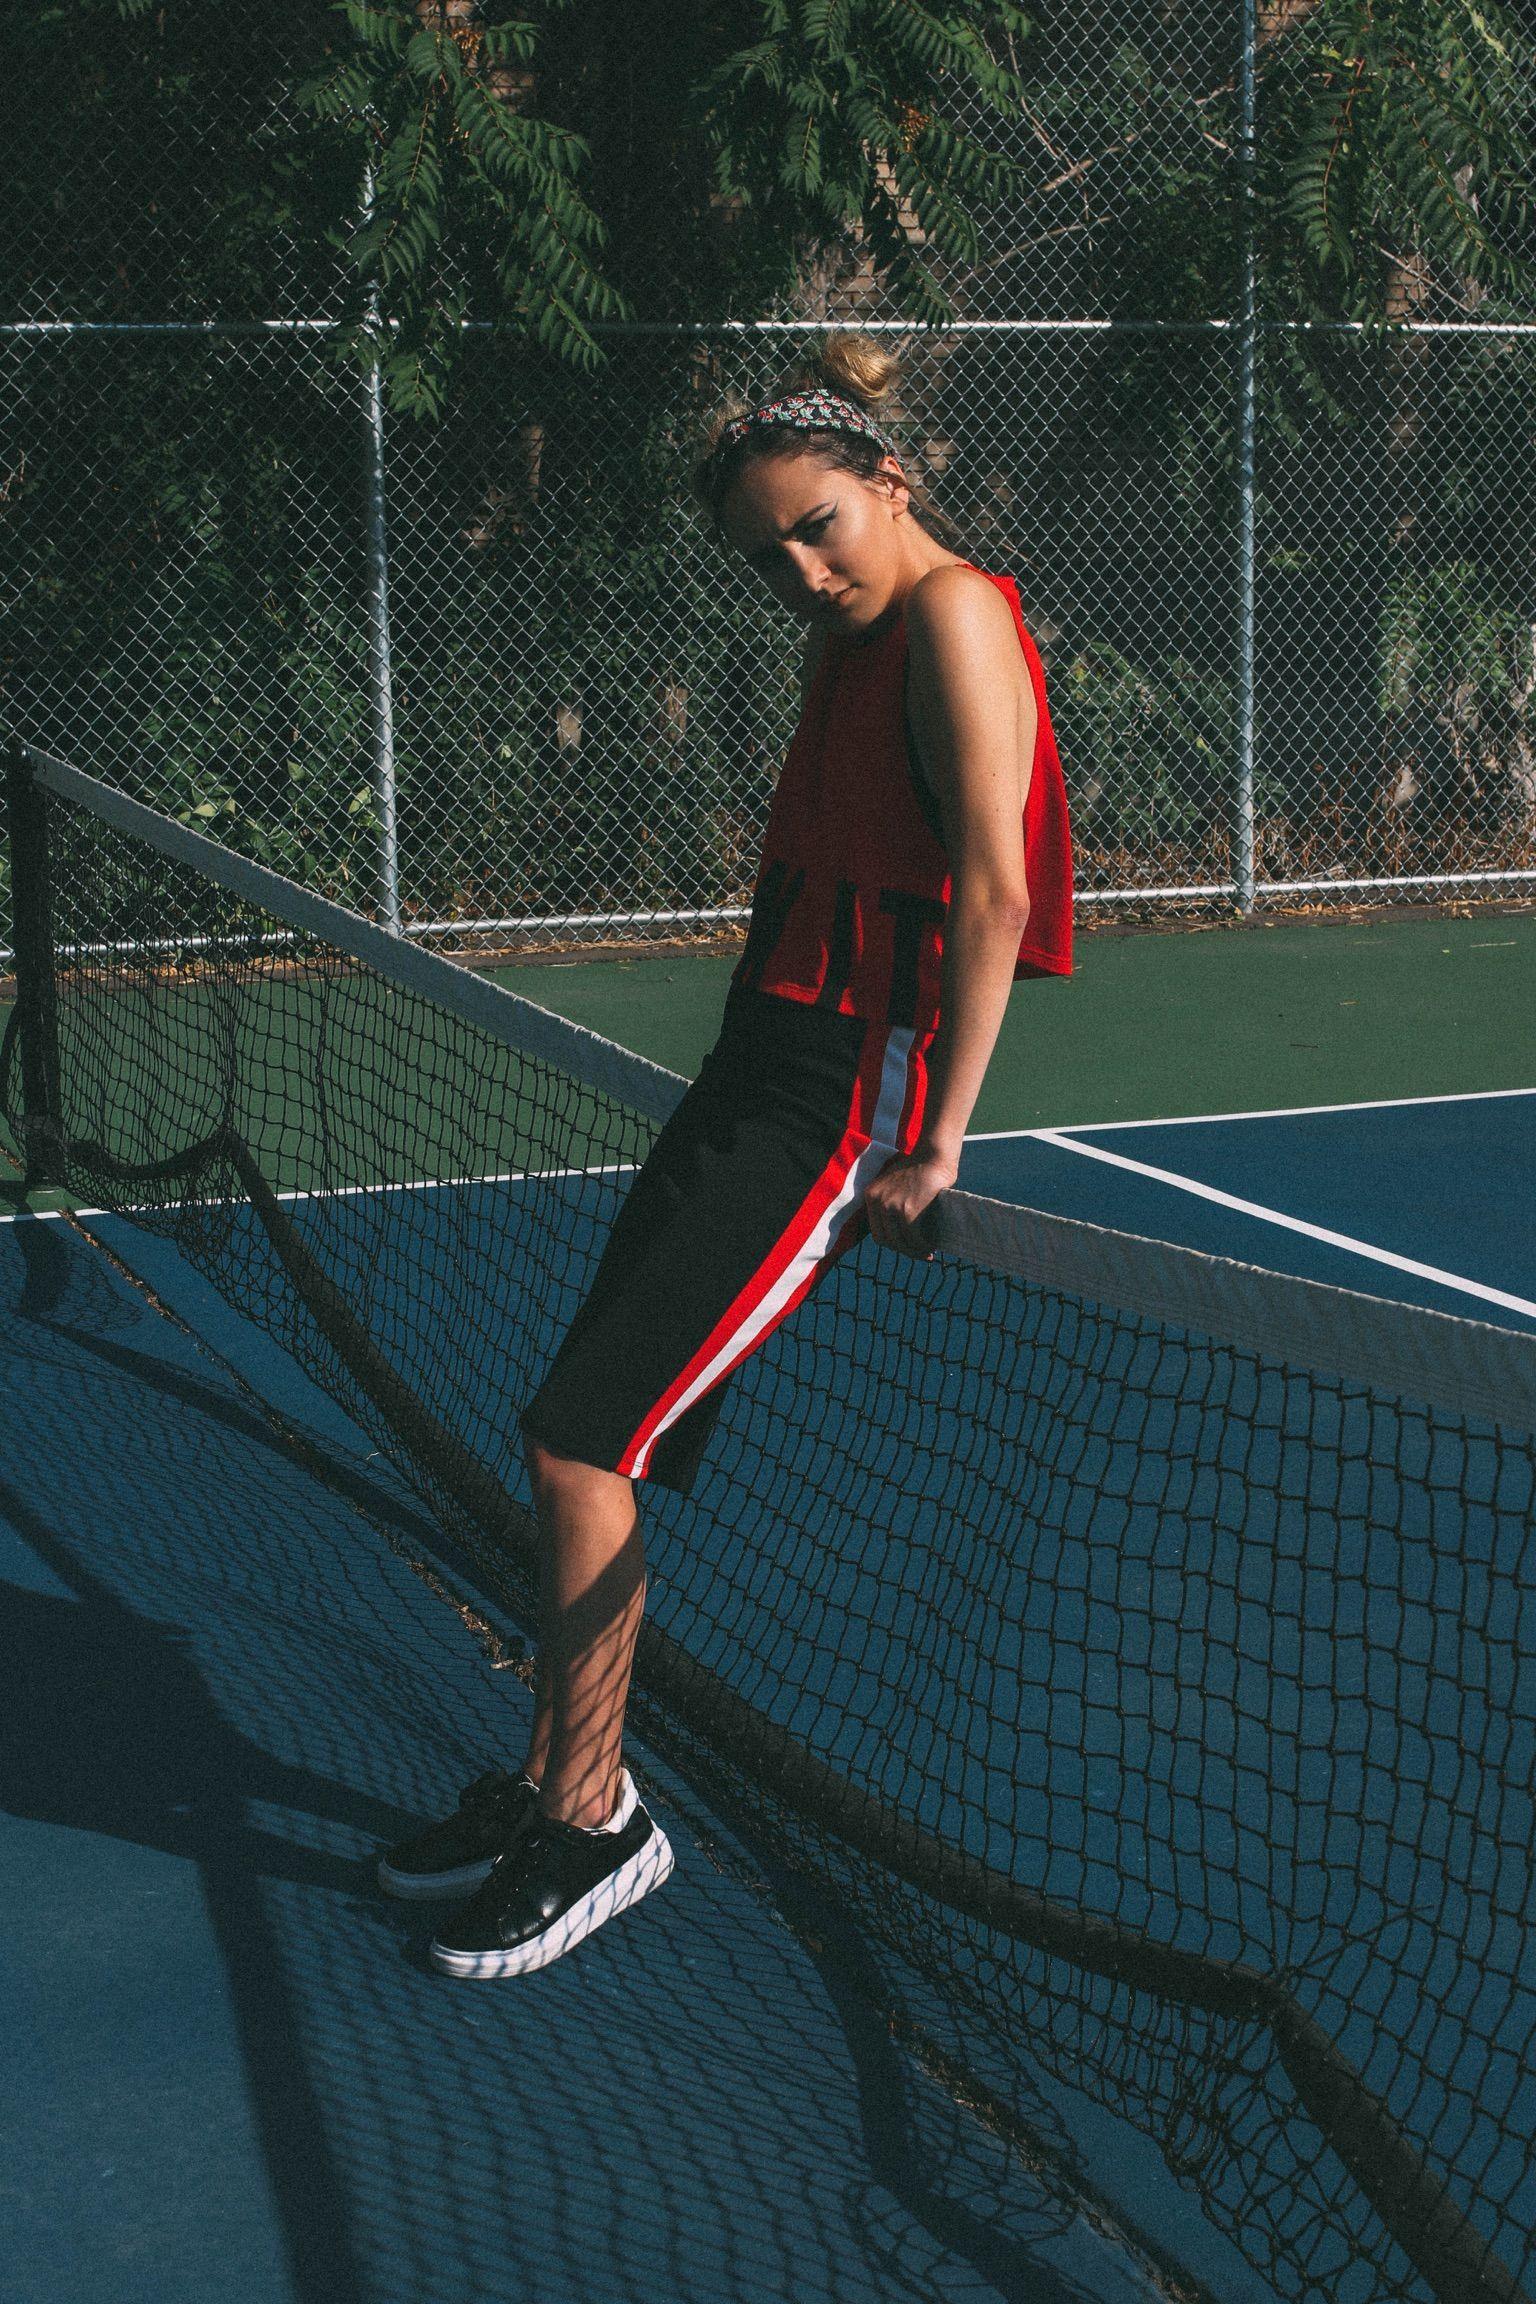 Google Image Search For Tennis Court Photoshoot Tennis Court Photoshoot Tennis Fashion Tennis Photography